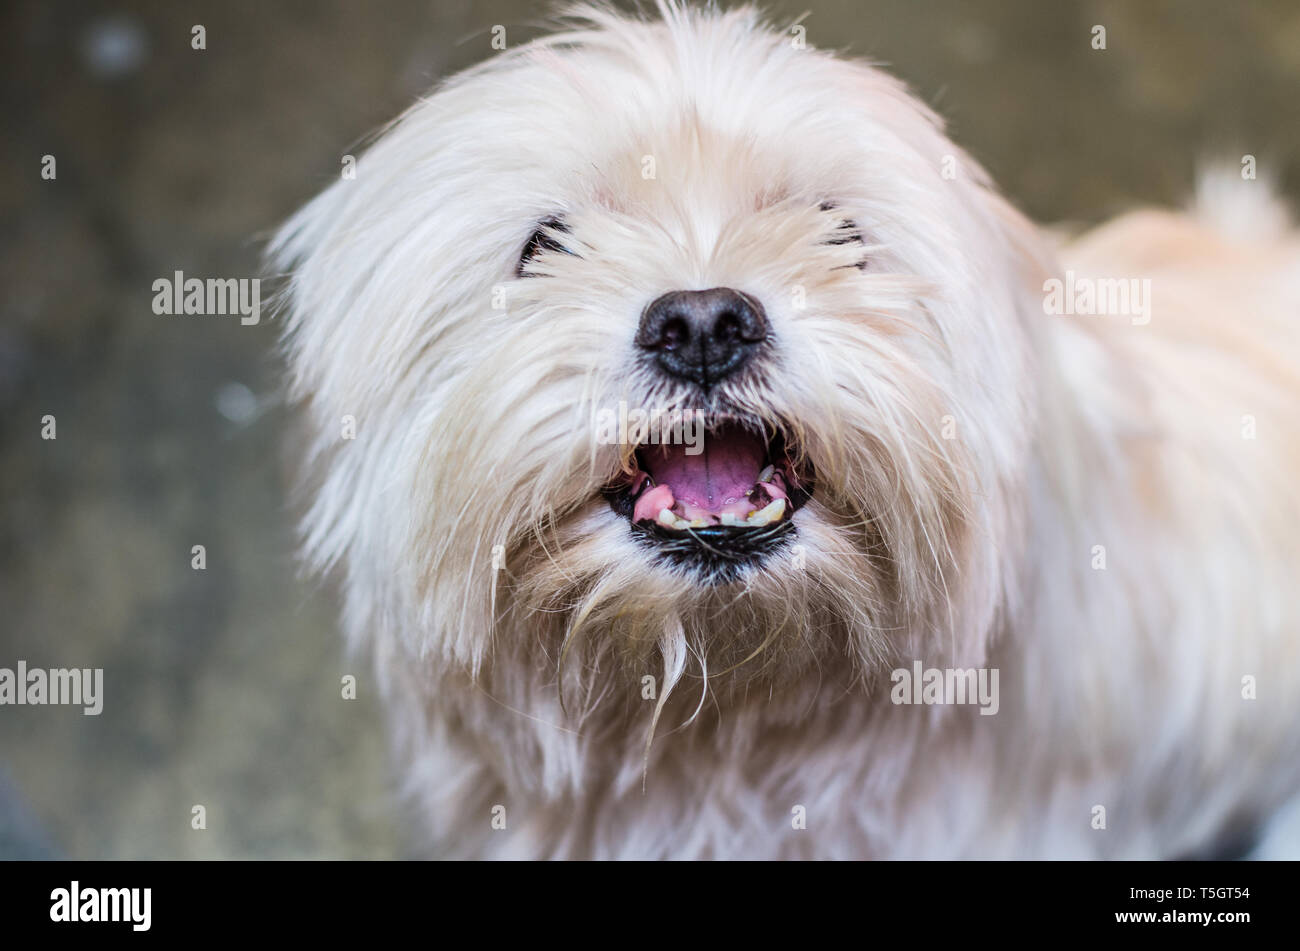 Dog growls into the camera. Maltese is angry and shows fangs. - Stock Image